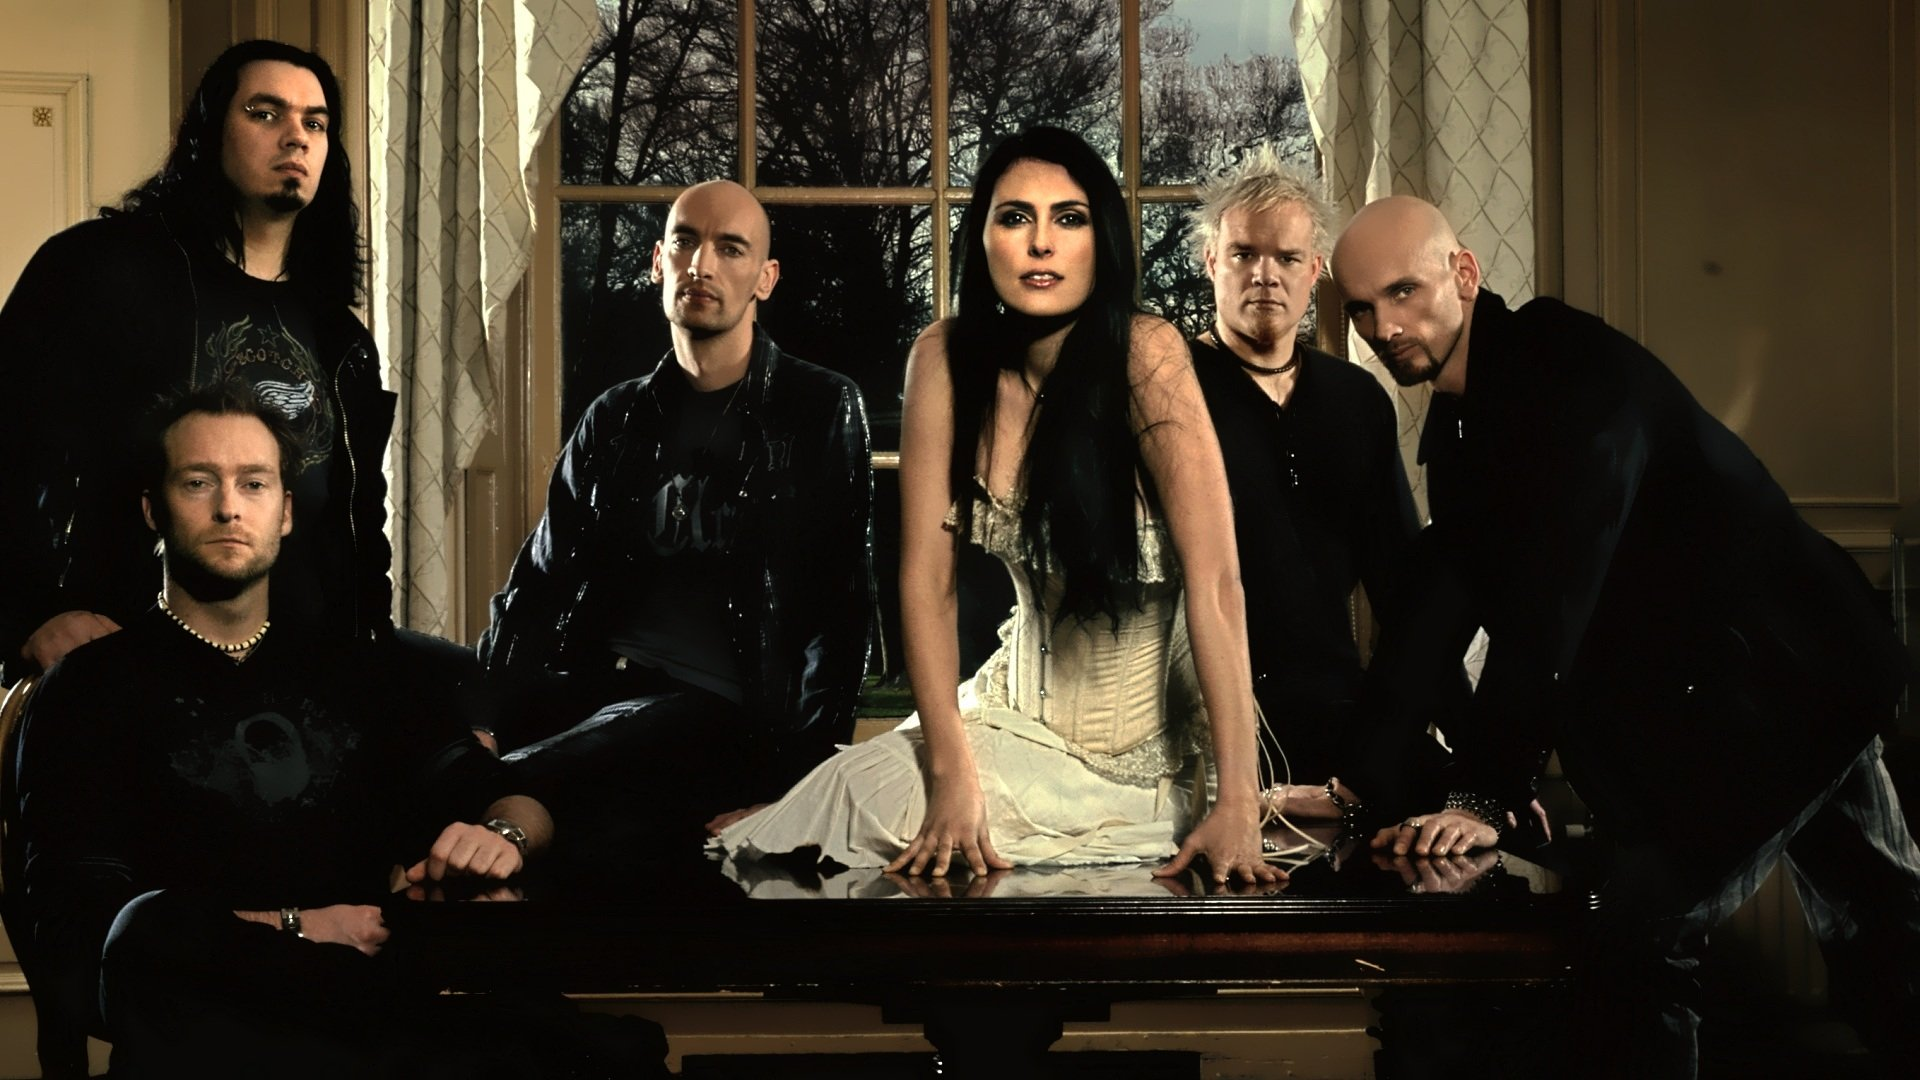 Within temptation hd wallpaper | background image | 1920x1080 | id.